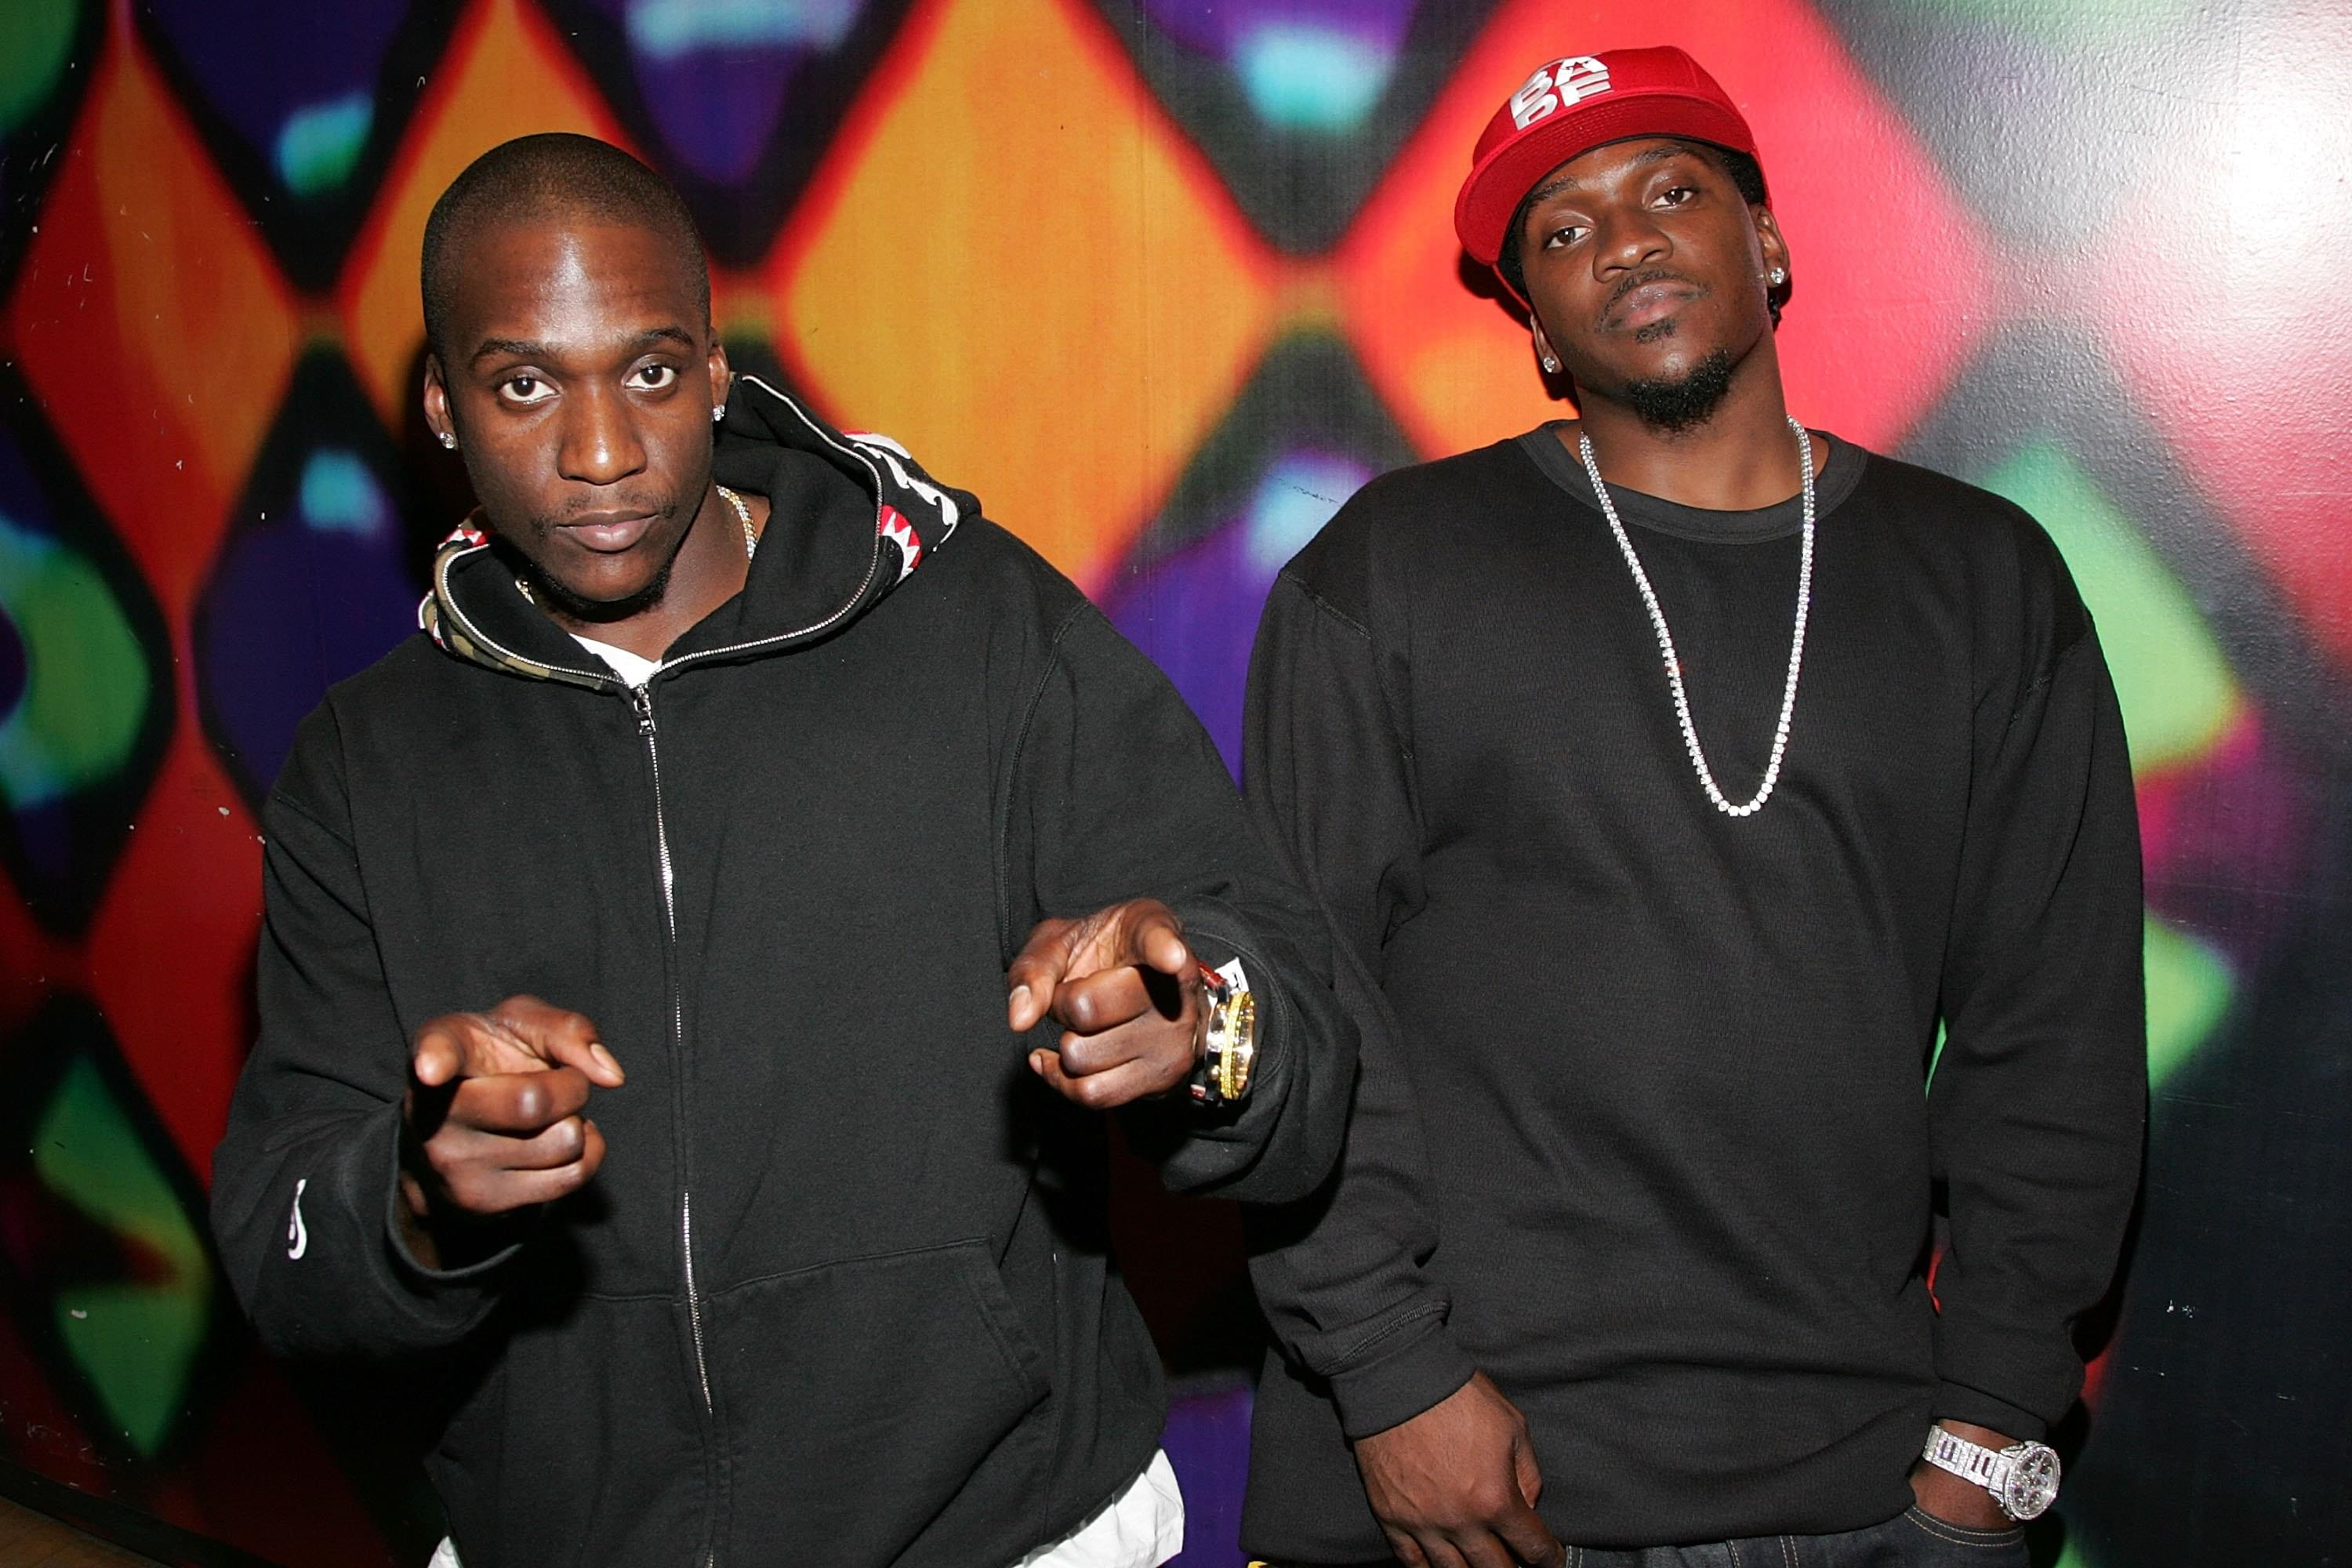 New Clipse Song Is Ready To Be Released, According To Justice League